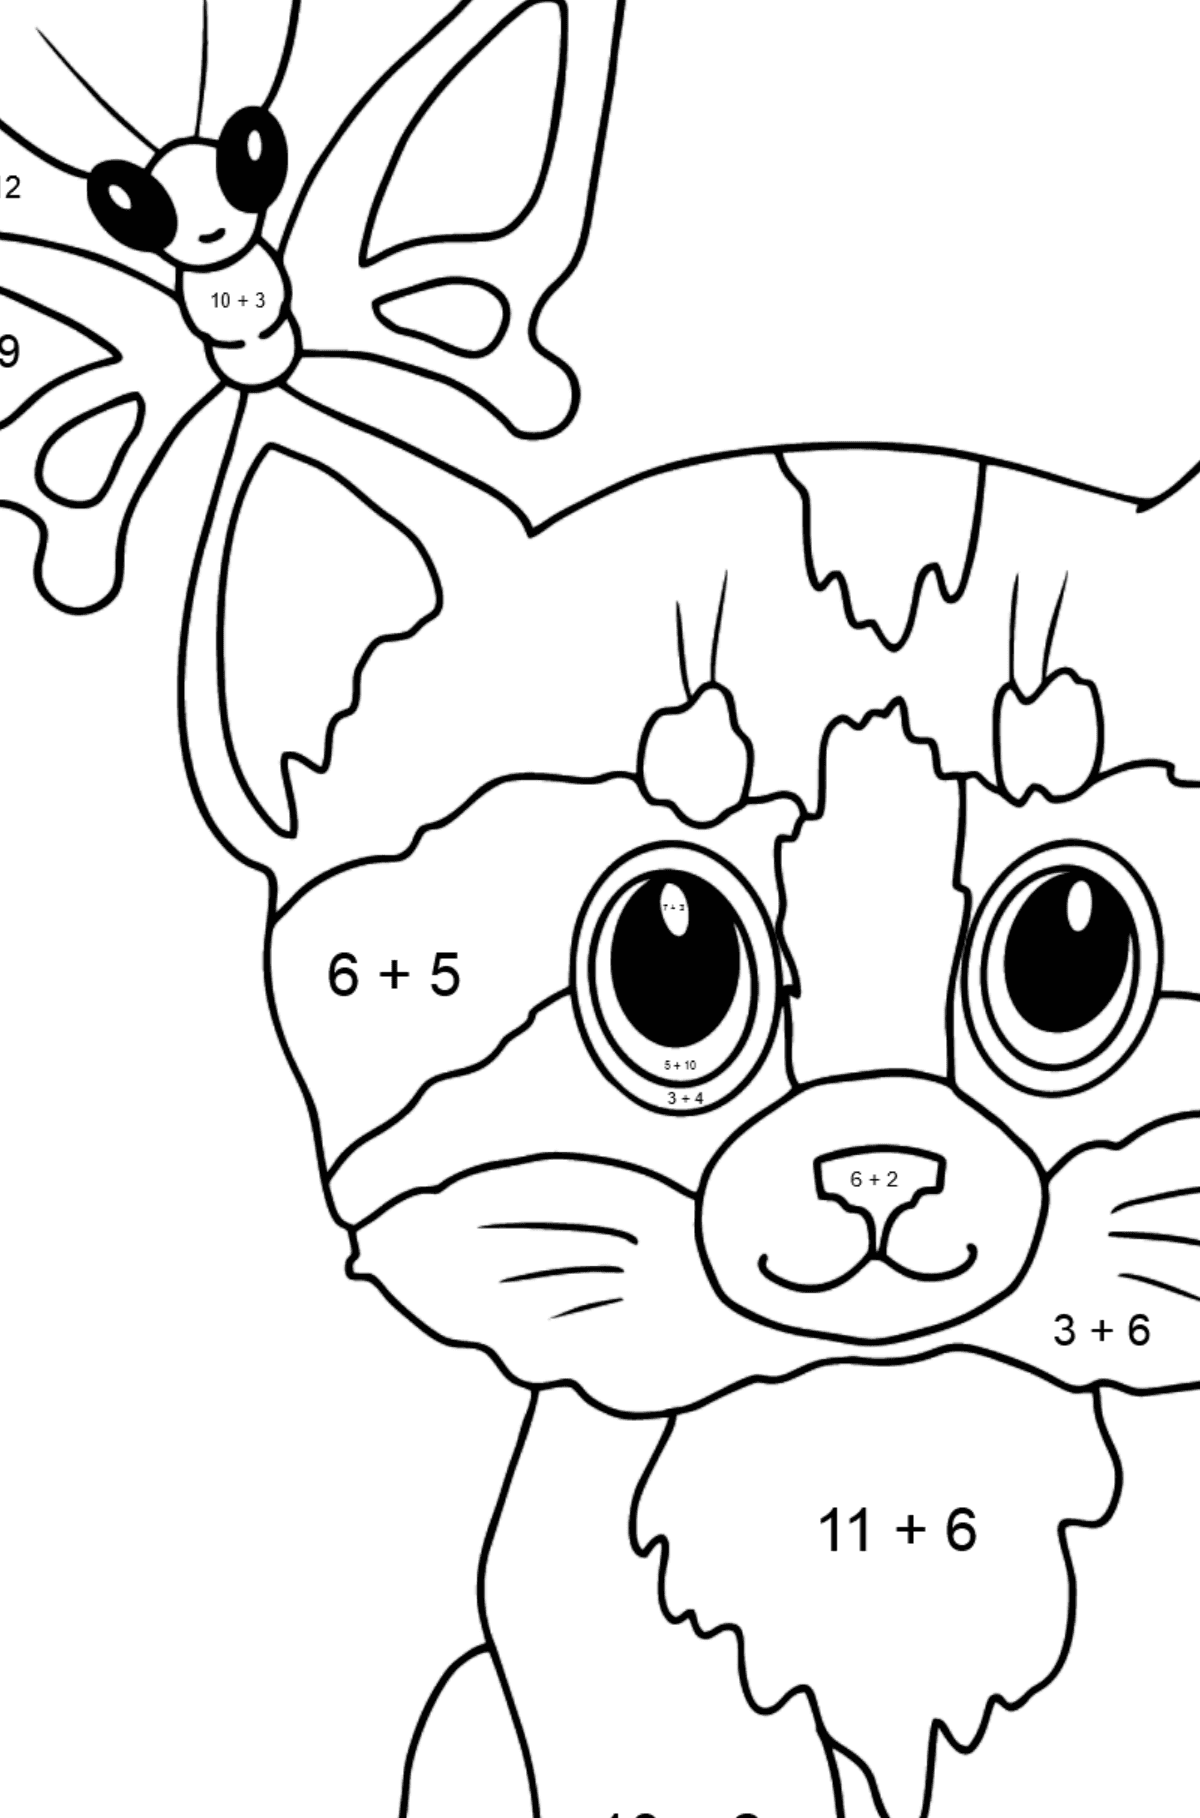 Coloring Page - A Kitten has Caught a Butterfly - Math Coloring - Addition for Kids